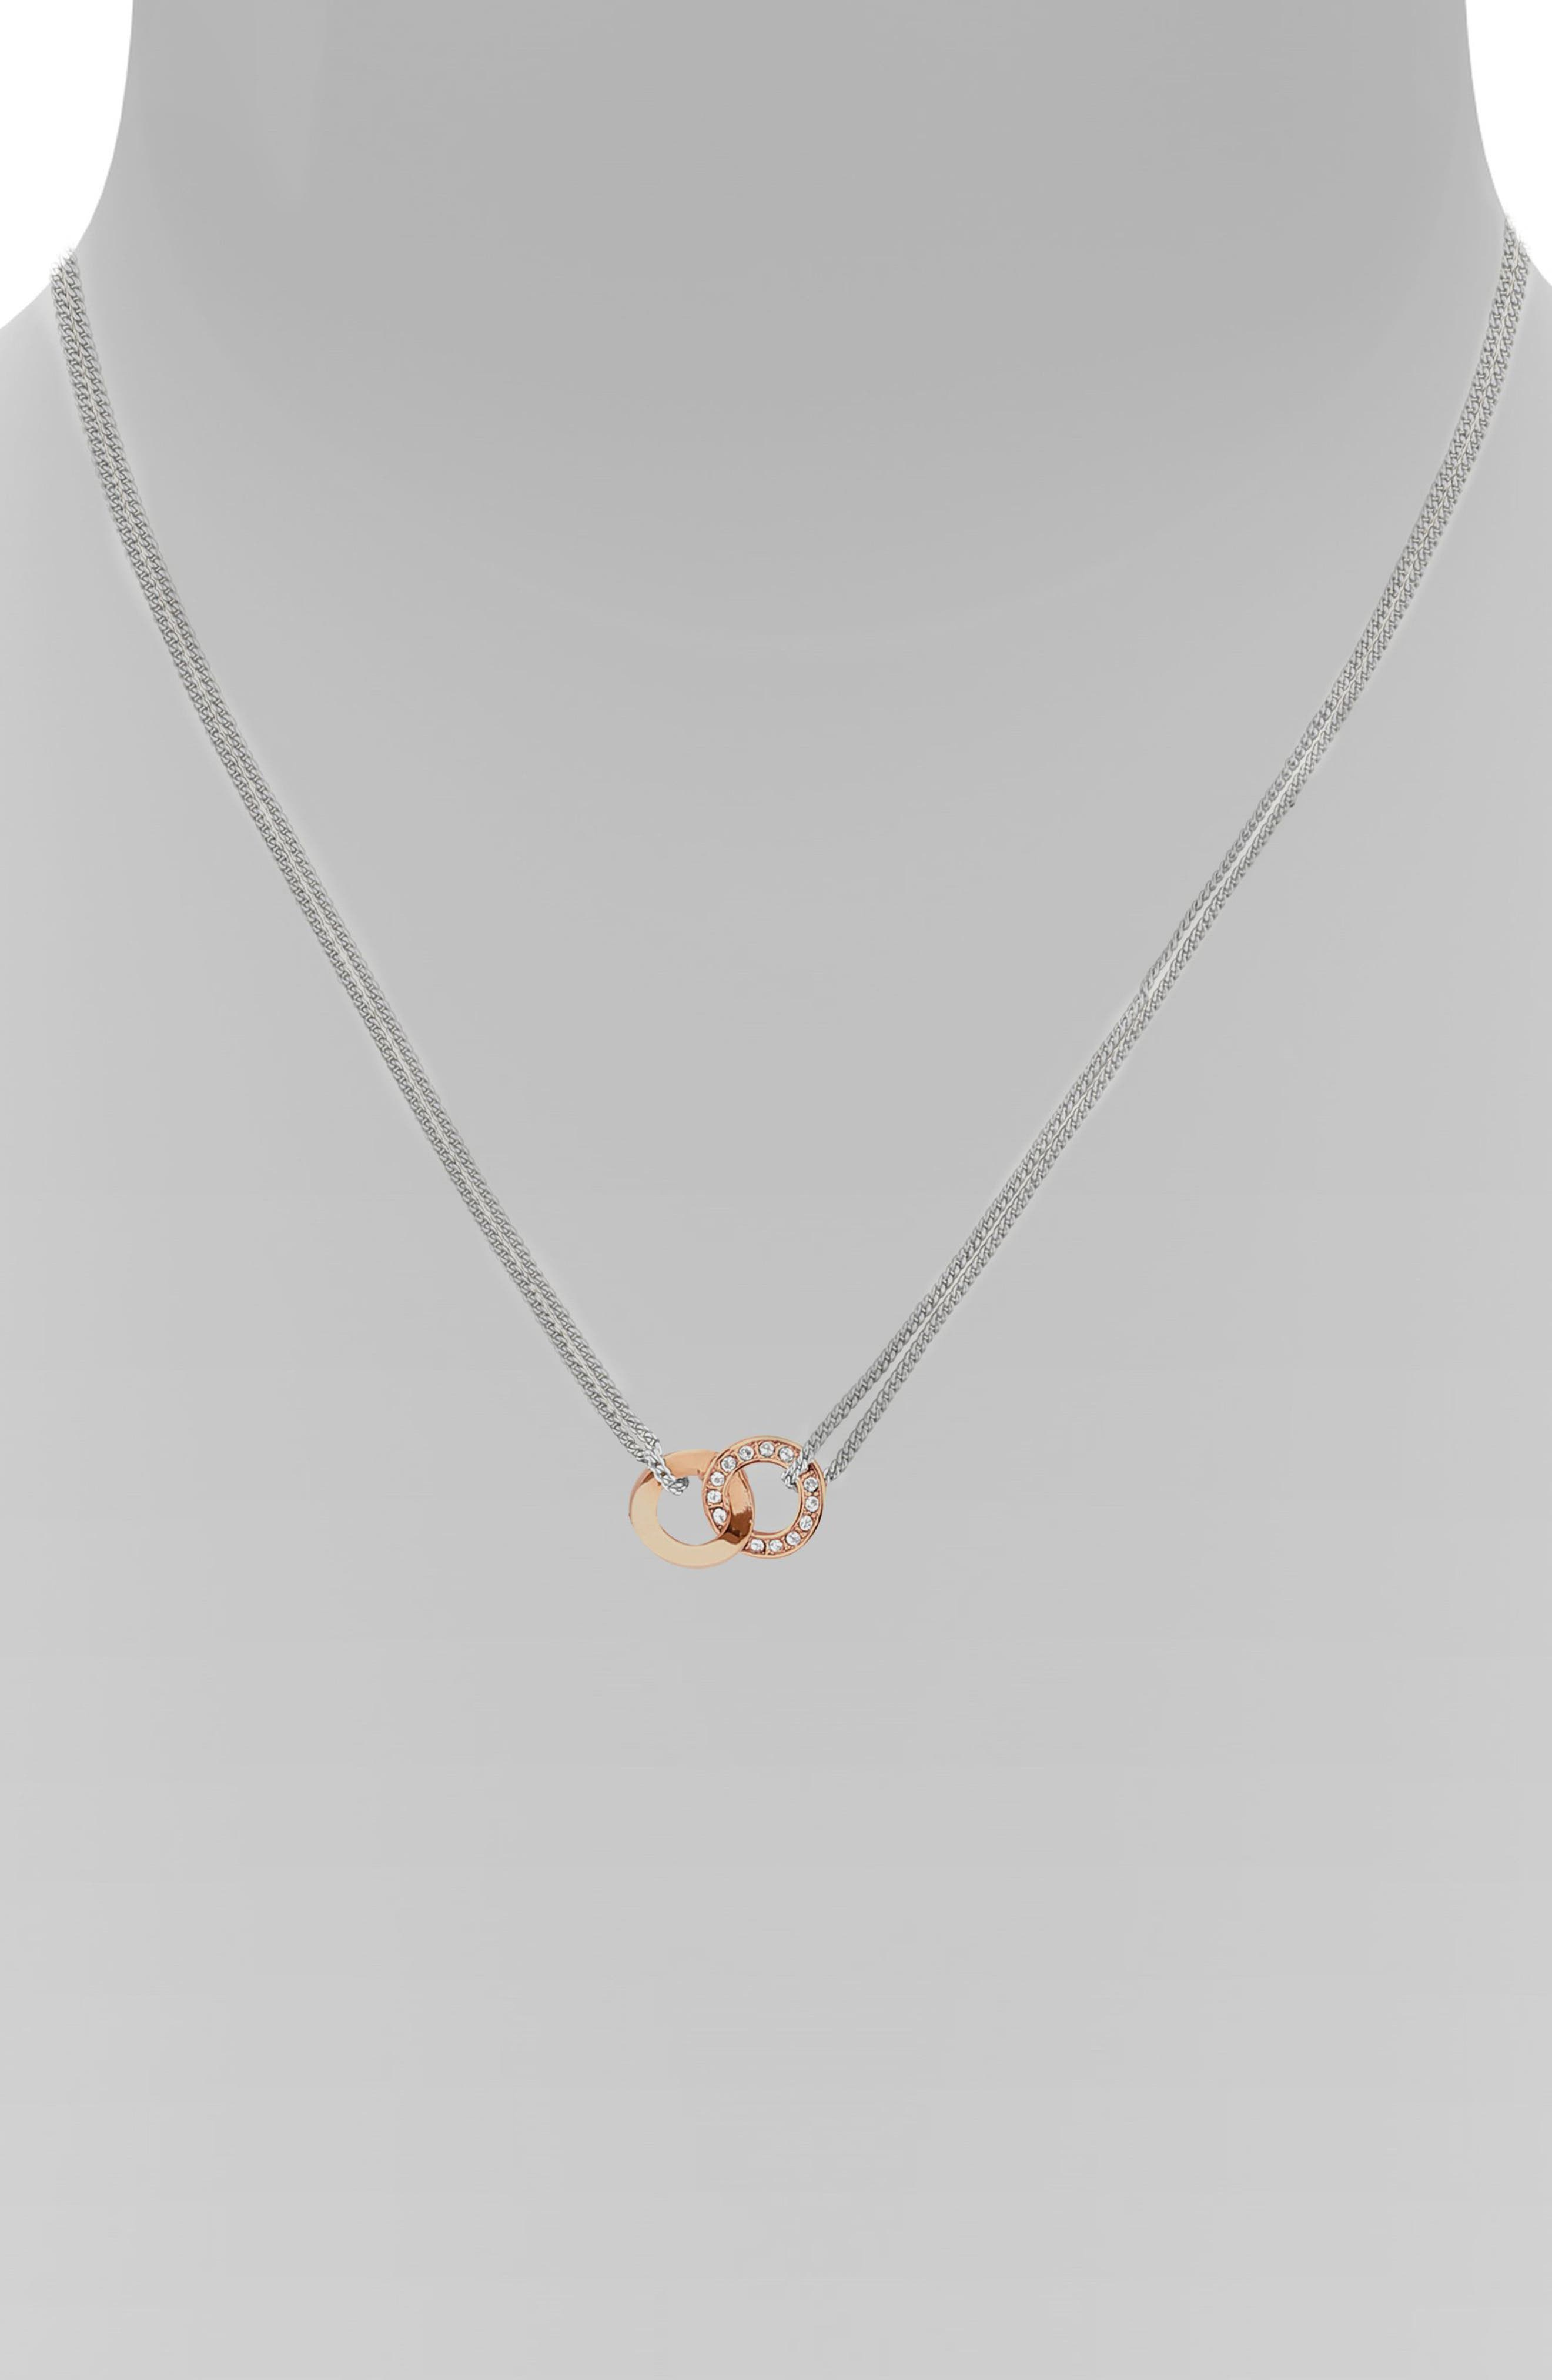 Interlocking Ring Dual Strand Necklace,                             Alternate thumbnail 2, color,                             SILVER/ ROSE GOLD